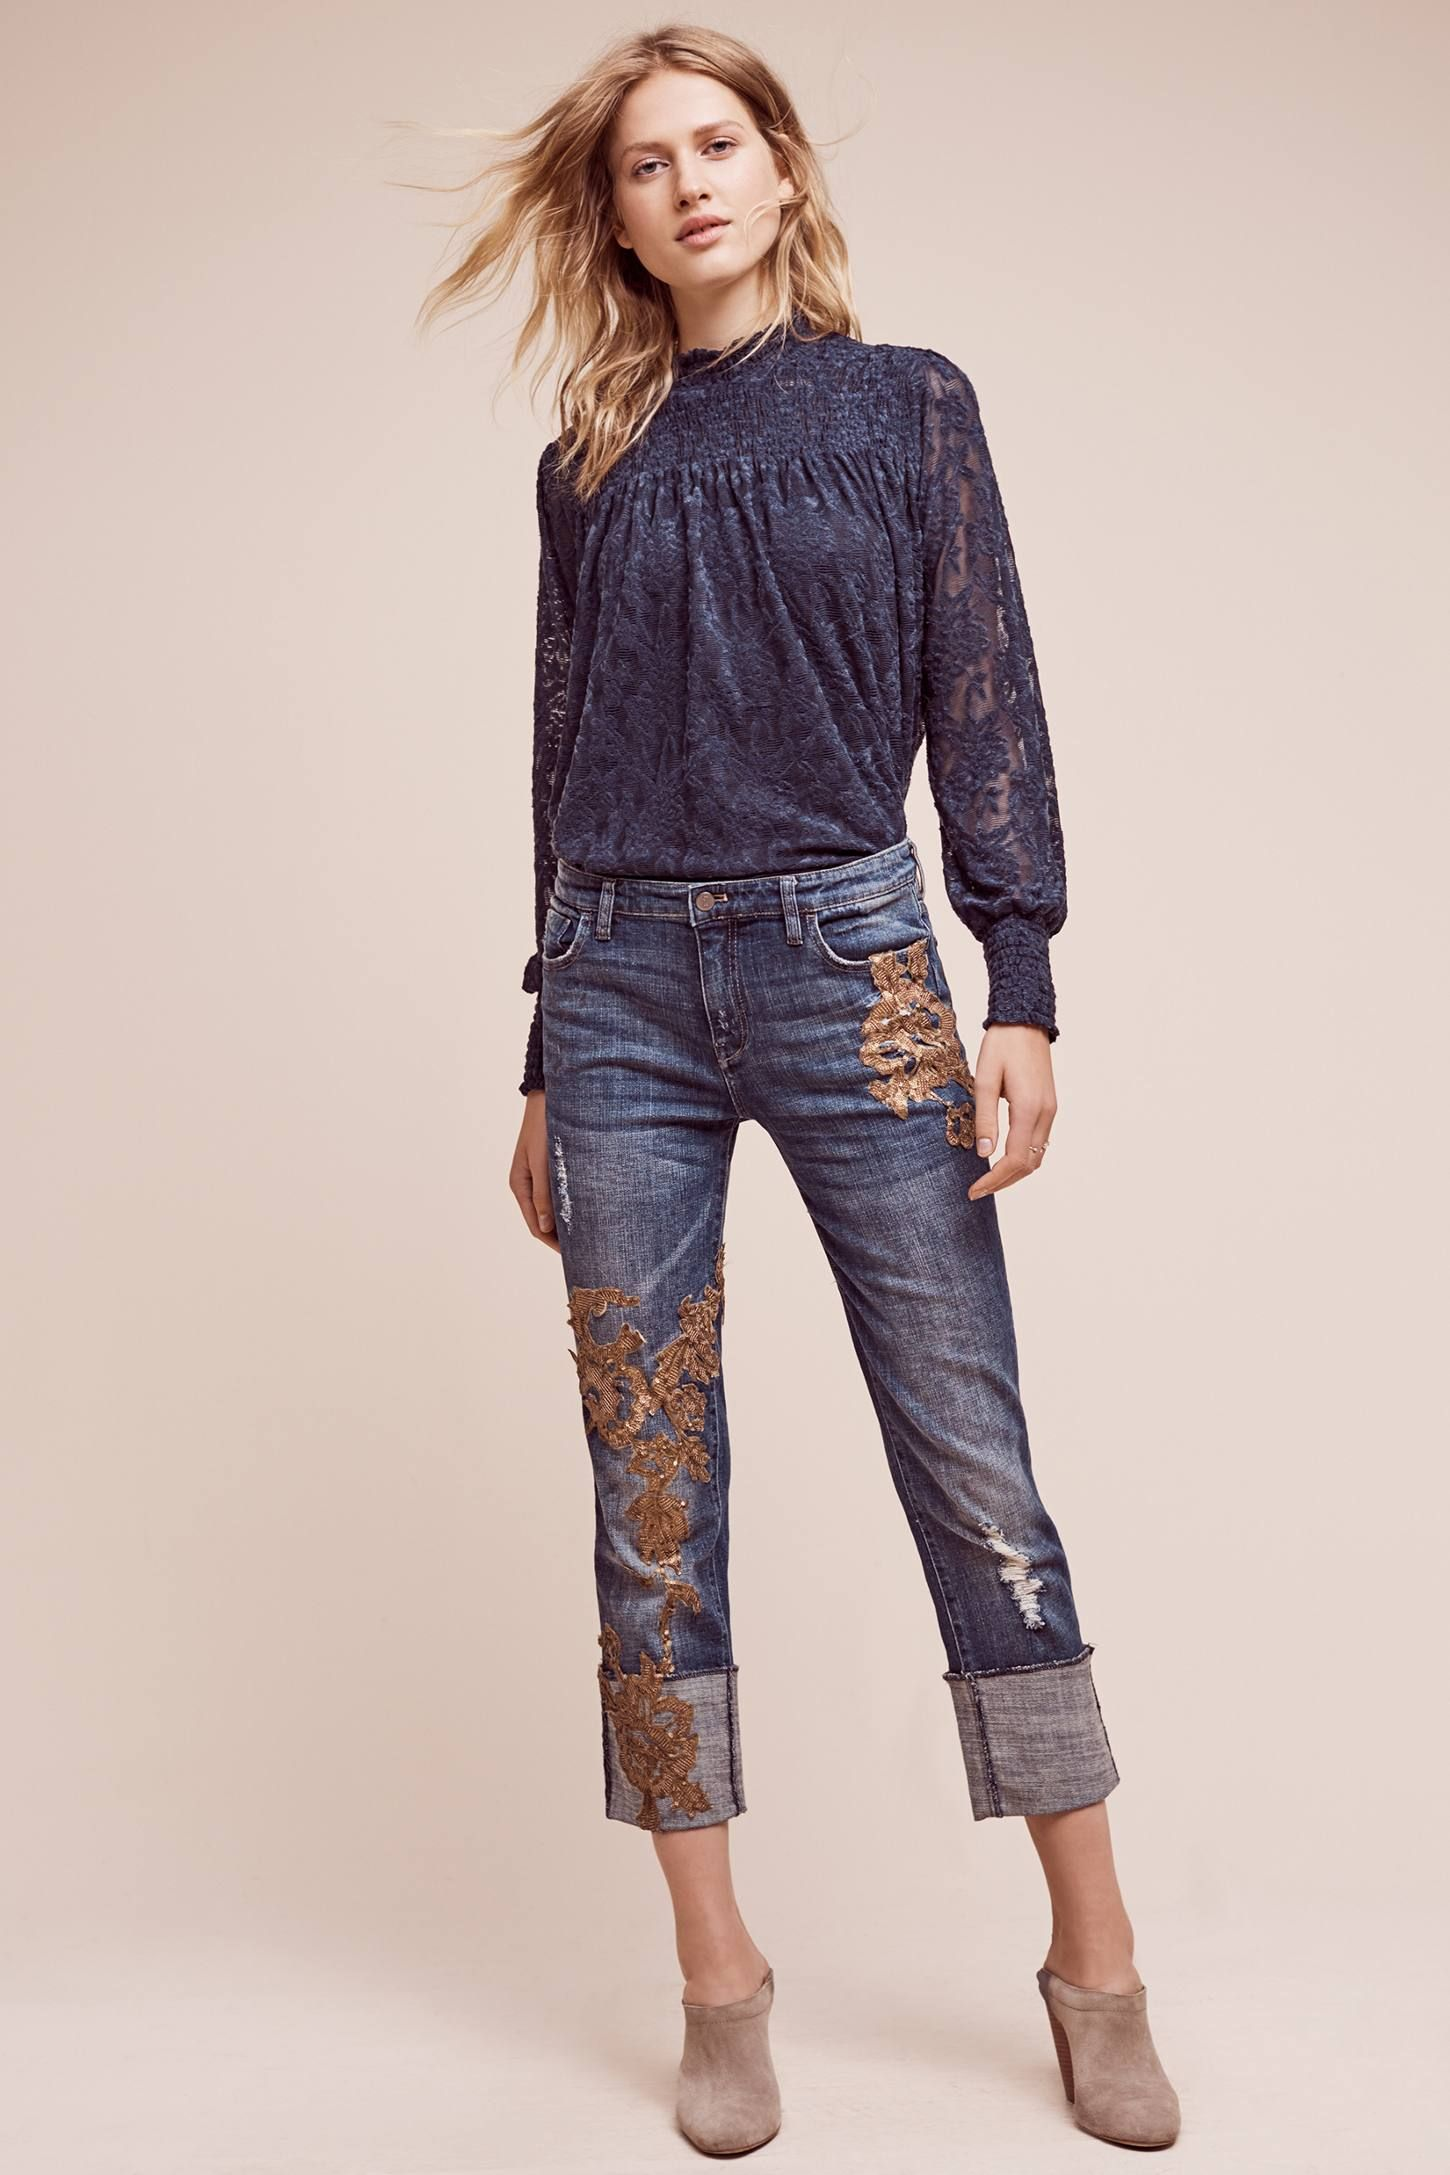 08bc50479771 Shop the Pilcro Hyphen Applique Mid-Rise Jeans and more Anthropologie at  Anthropologie today. Read customer reviews